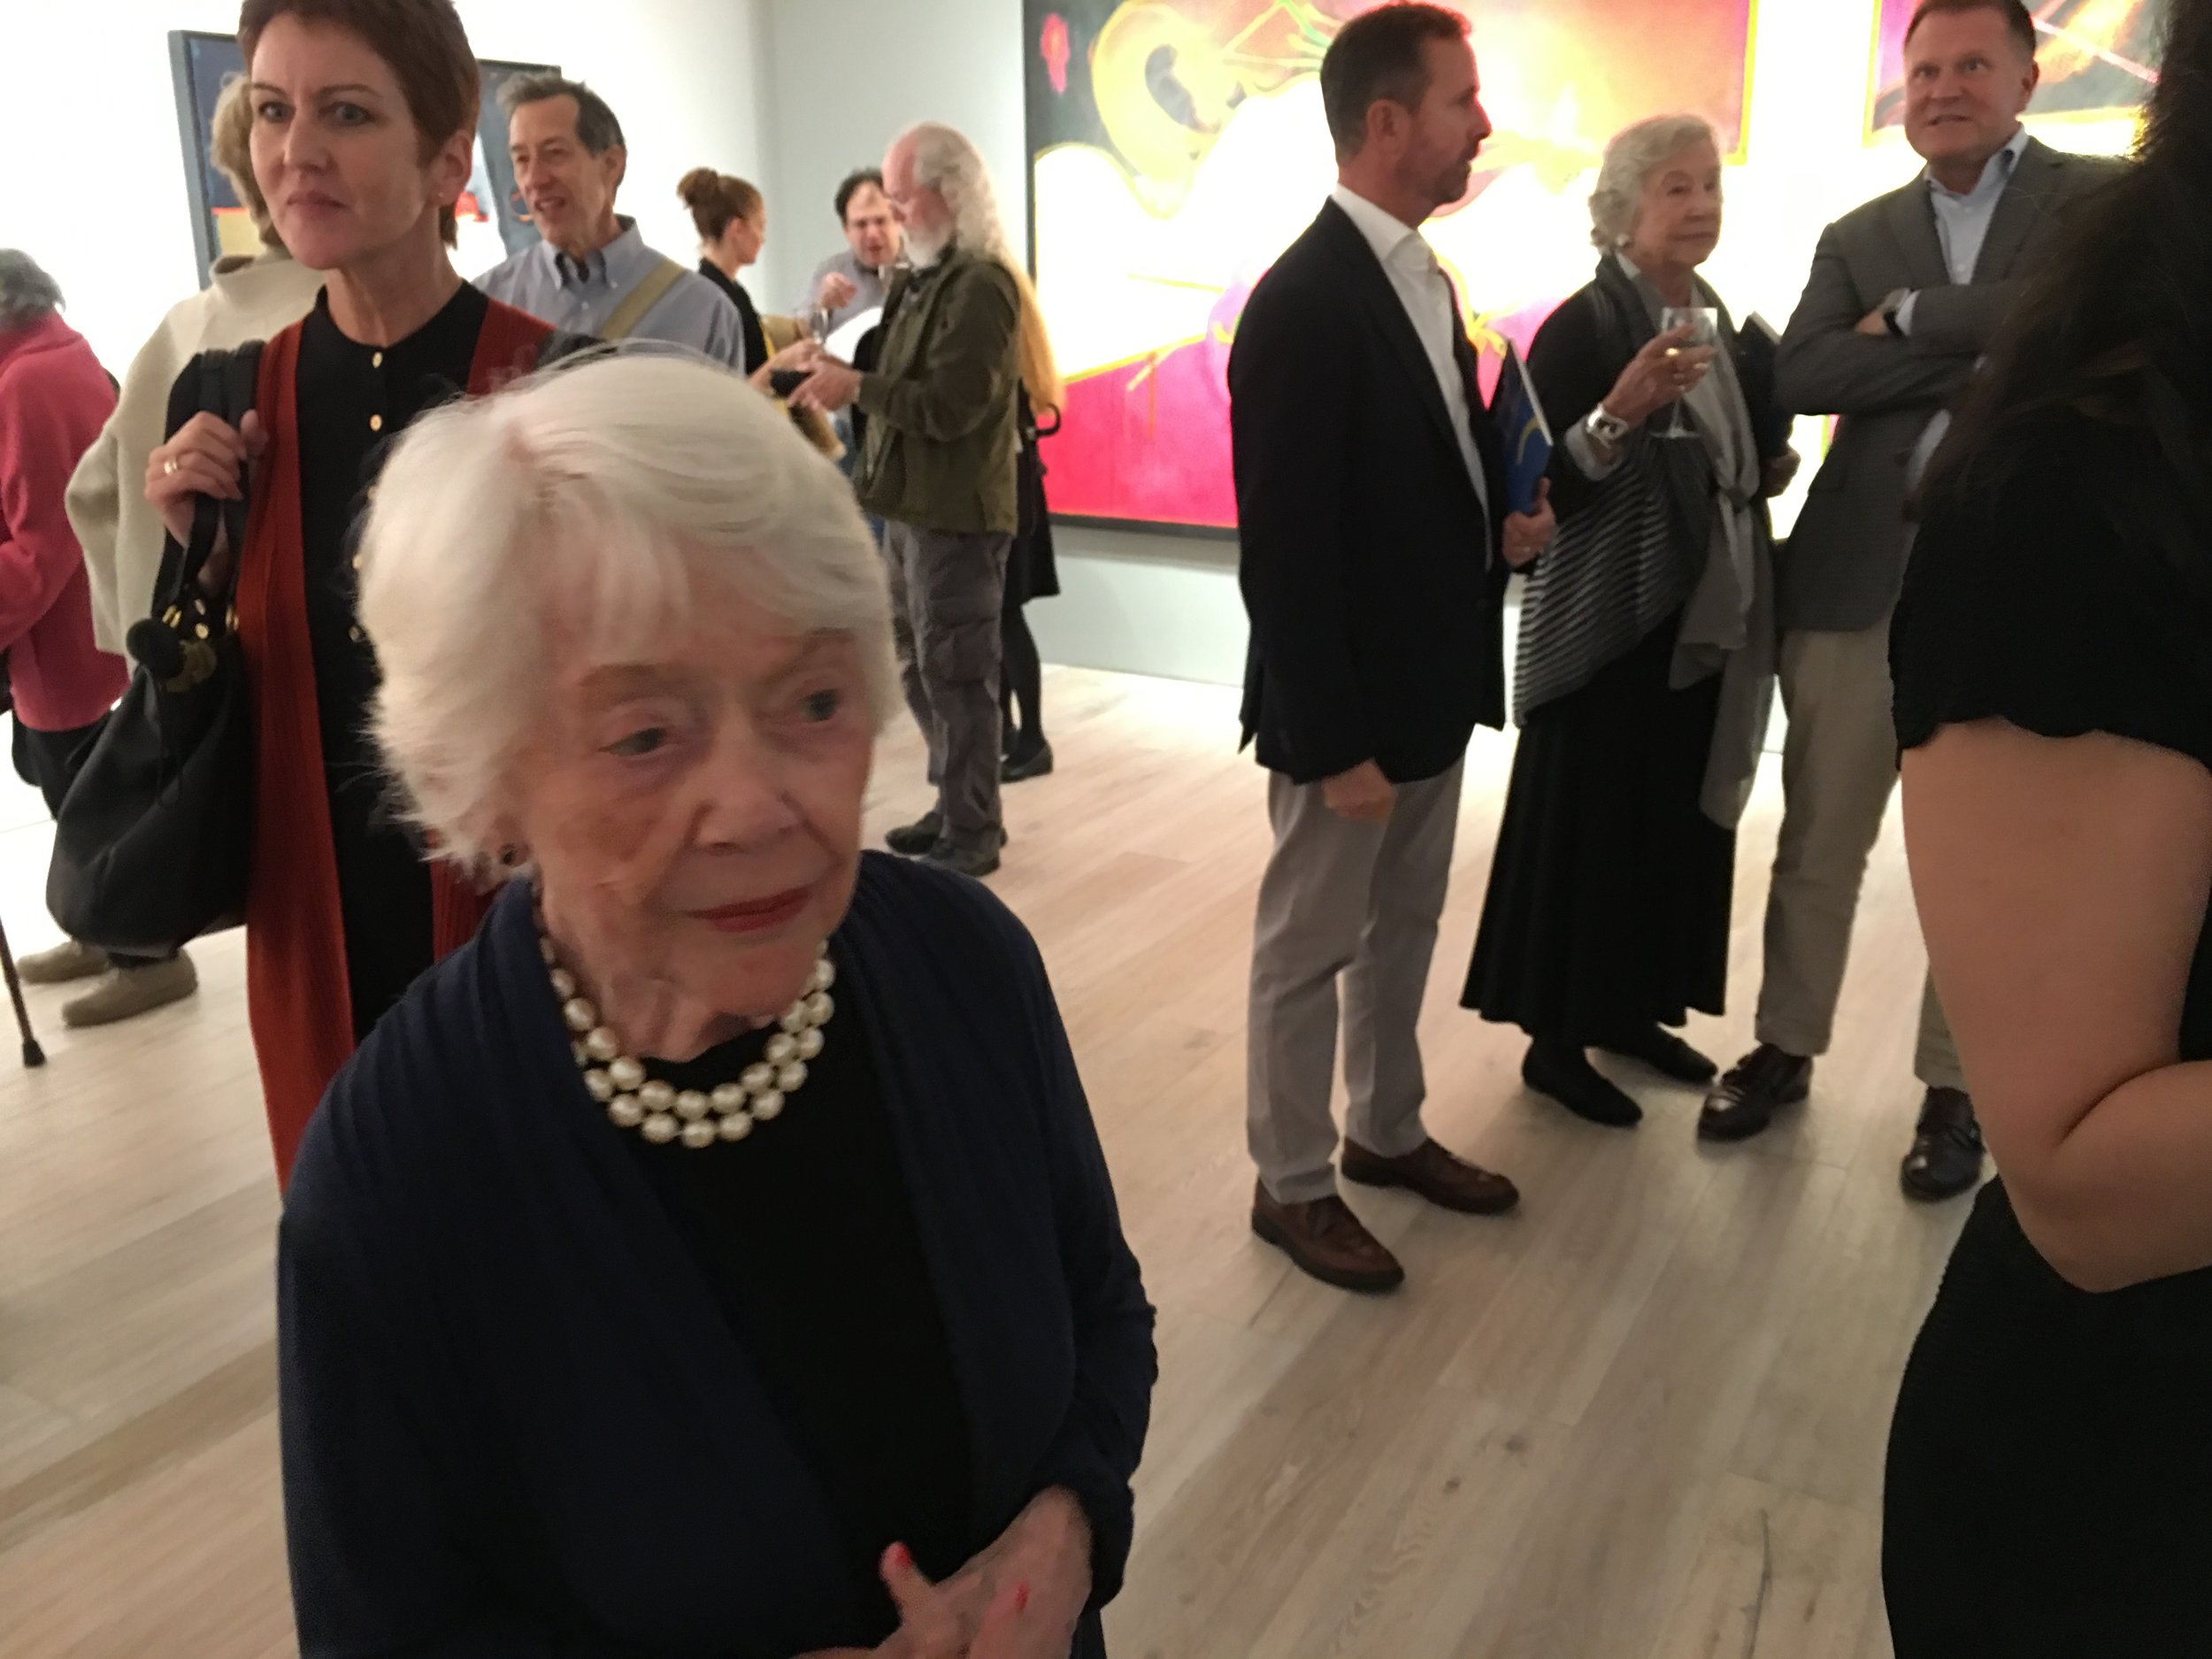 The first picture, Sally Scharf. The tall man is Christopher Rothko and next to him, back turned, is Hollis Taggart, the gallerist.